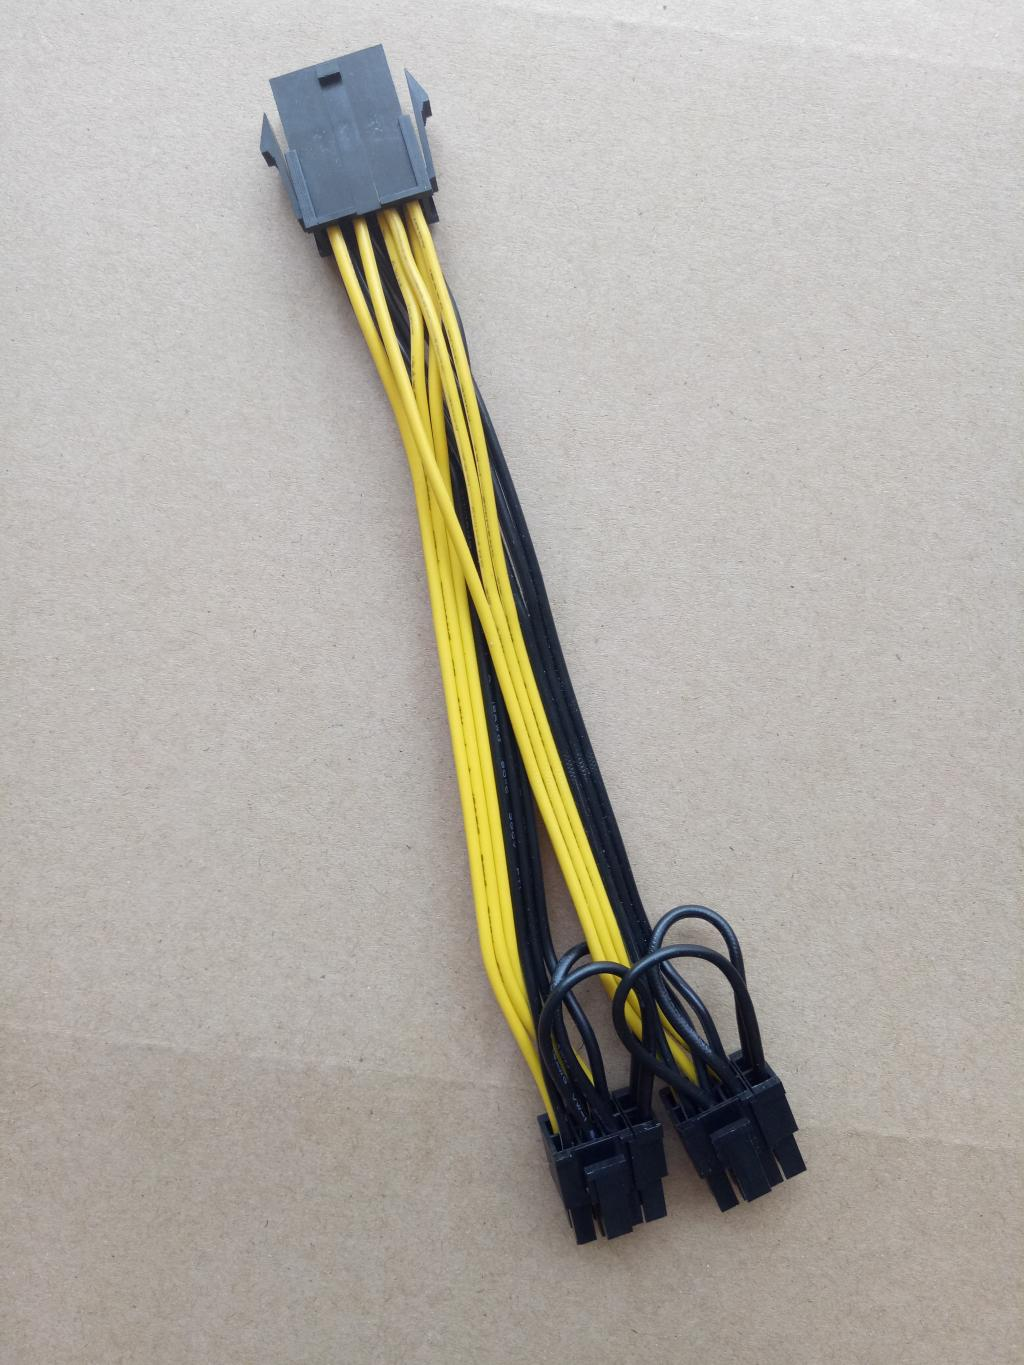 hight resolution of 8pin to 2x 8 pin cable wierd cable configuration is this correct tom s hardware forum